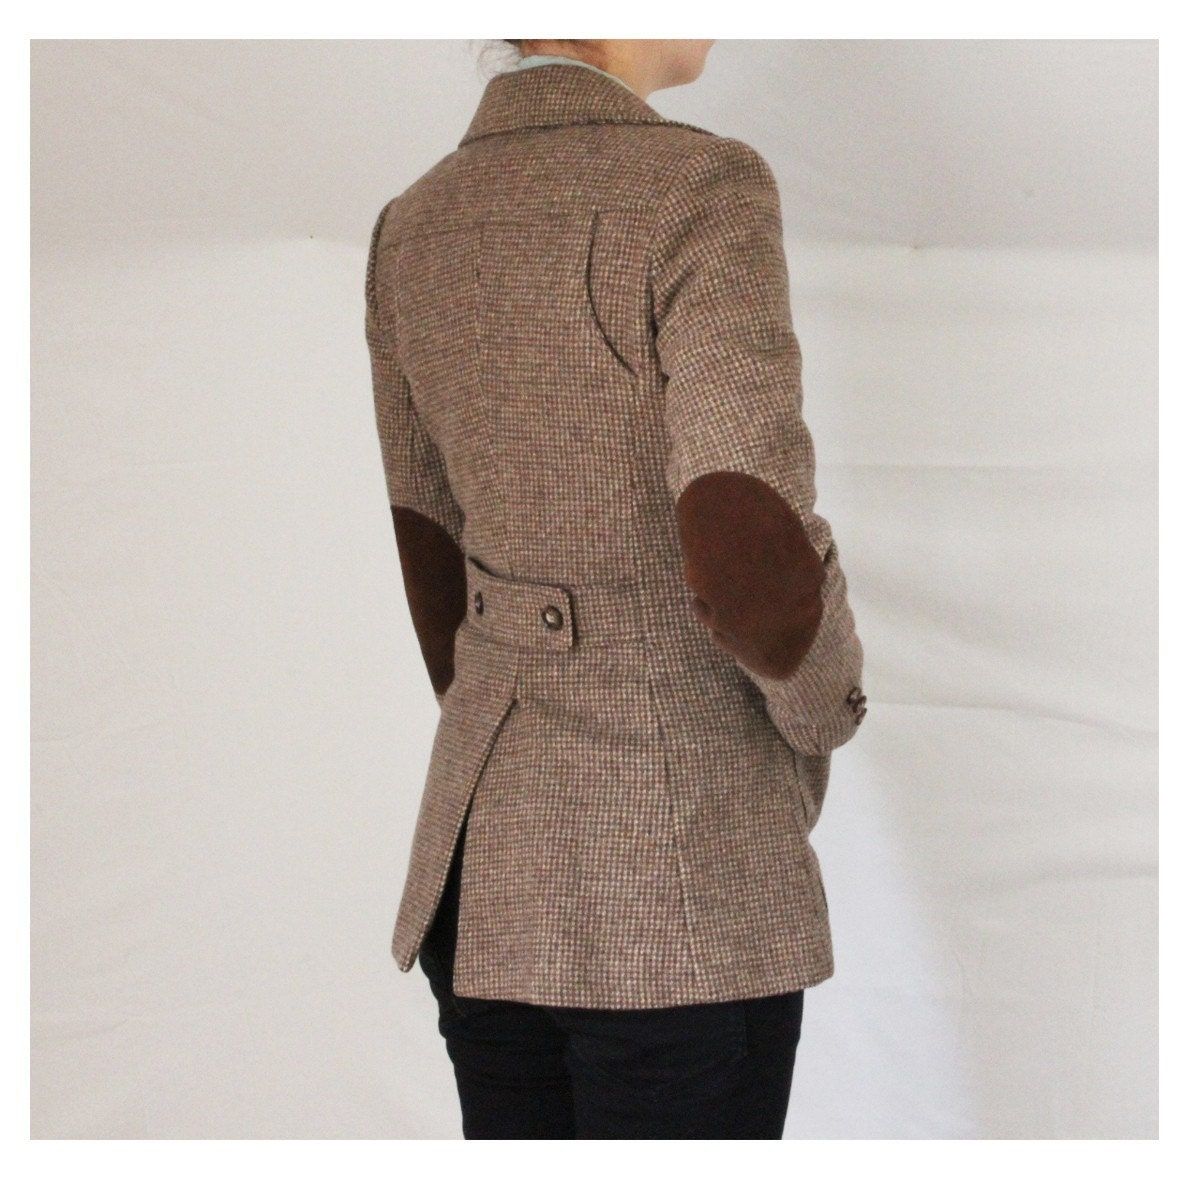 Womens tweed jacket with elbow patches